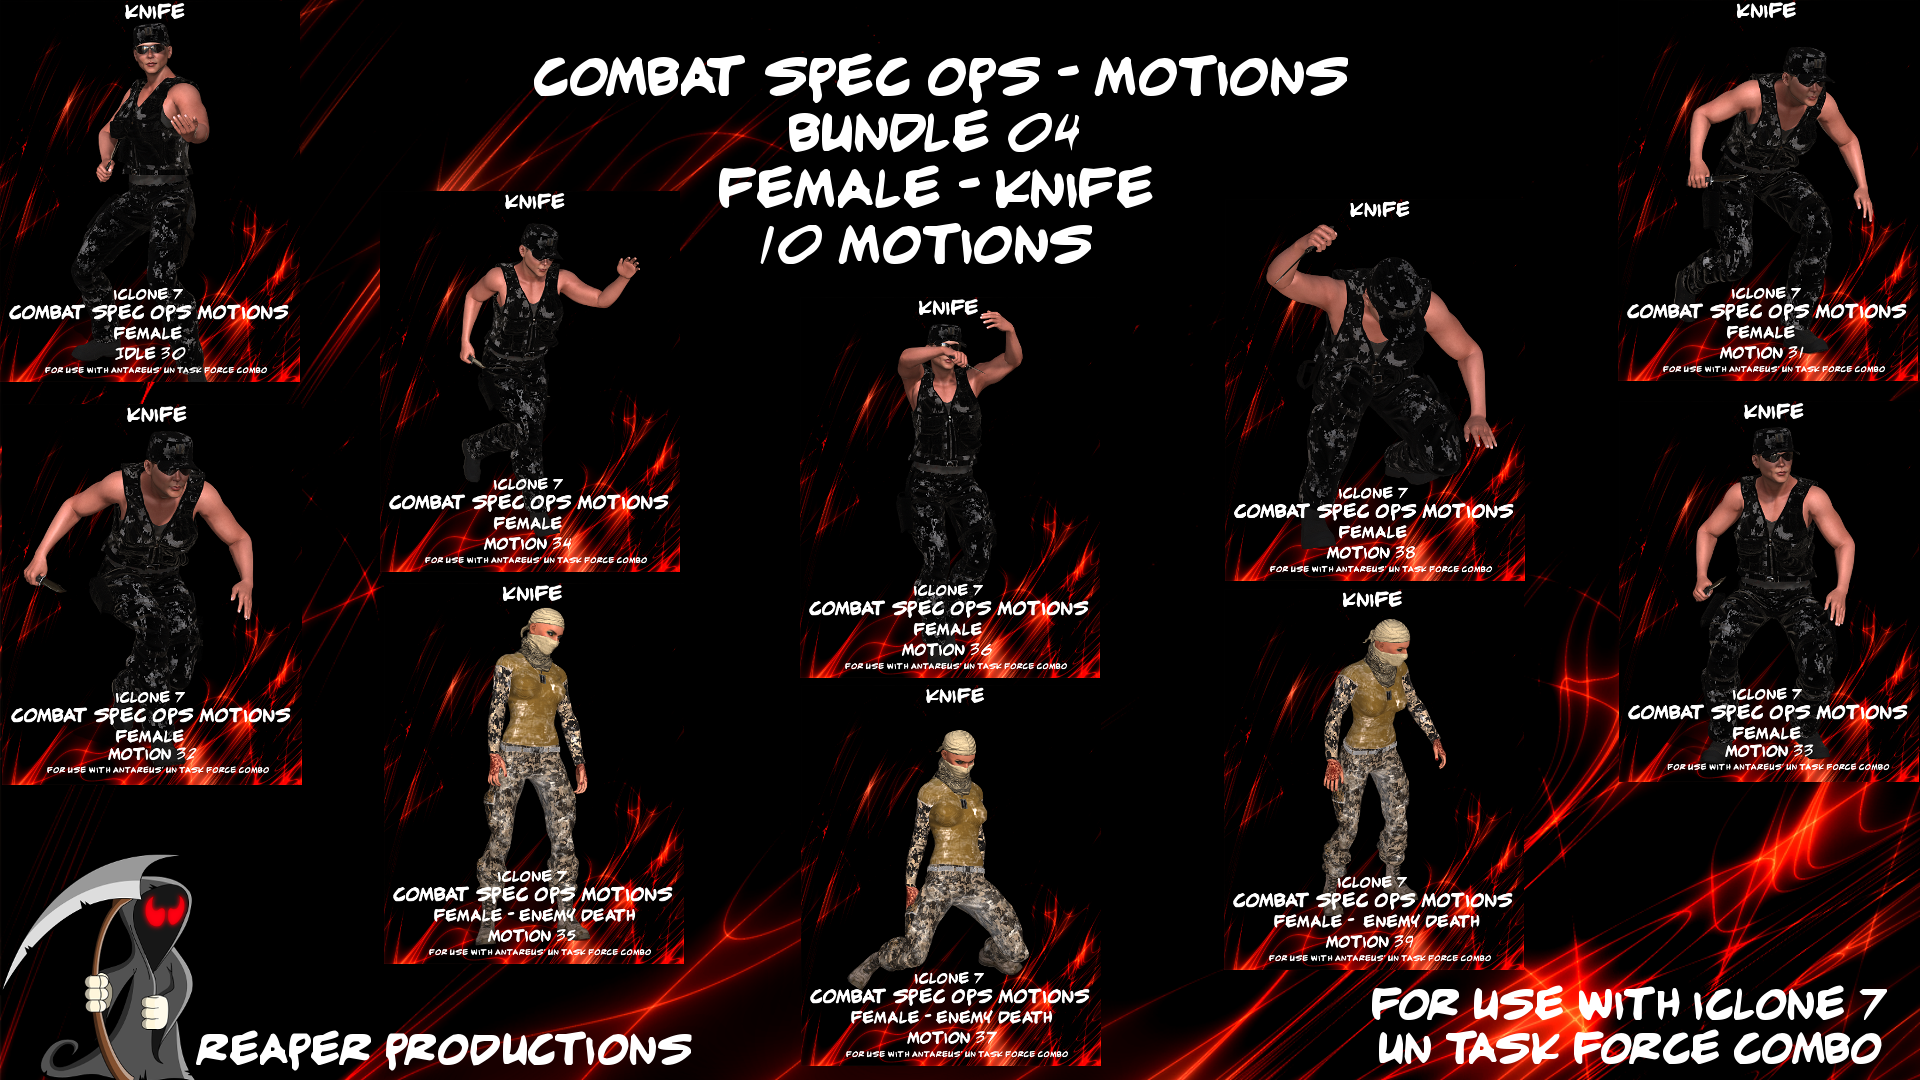 Spec Ops Motion Bundle 04 - Female Knife - Reallusion